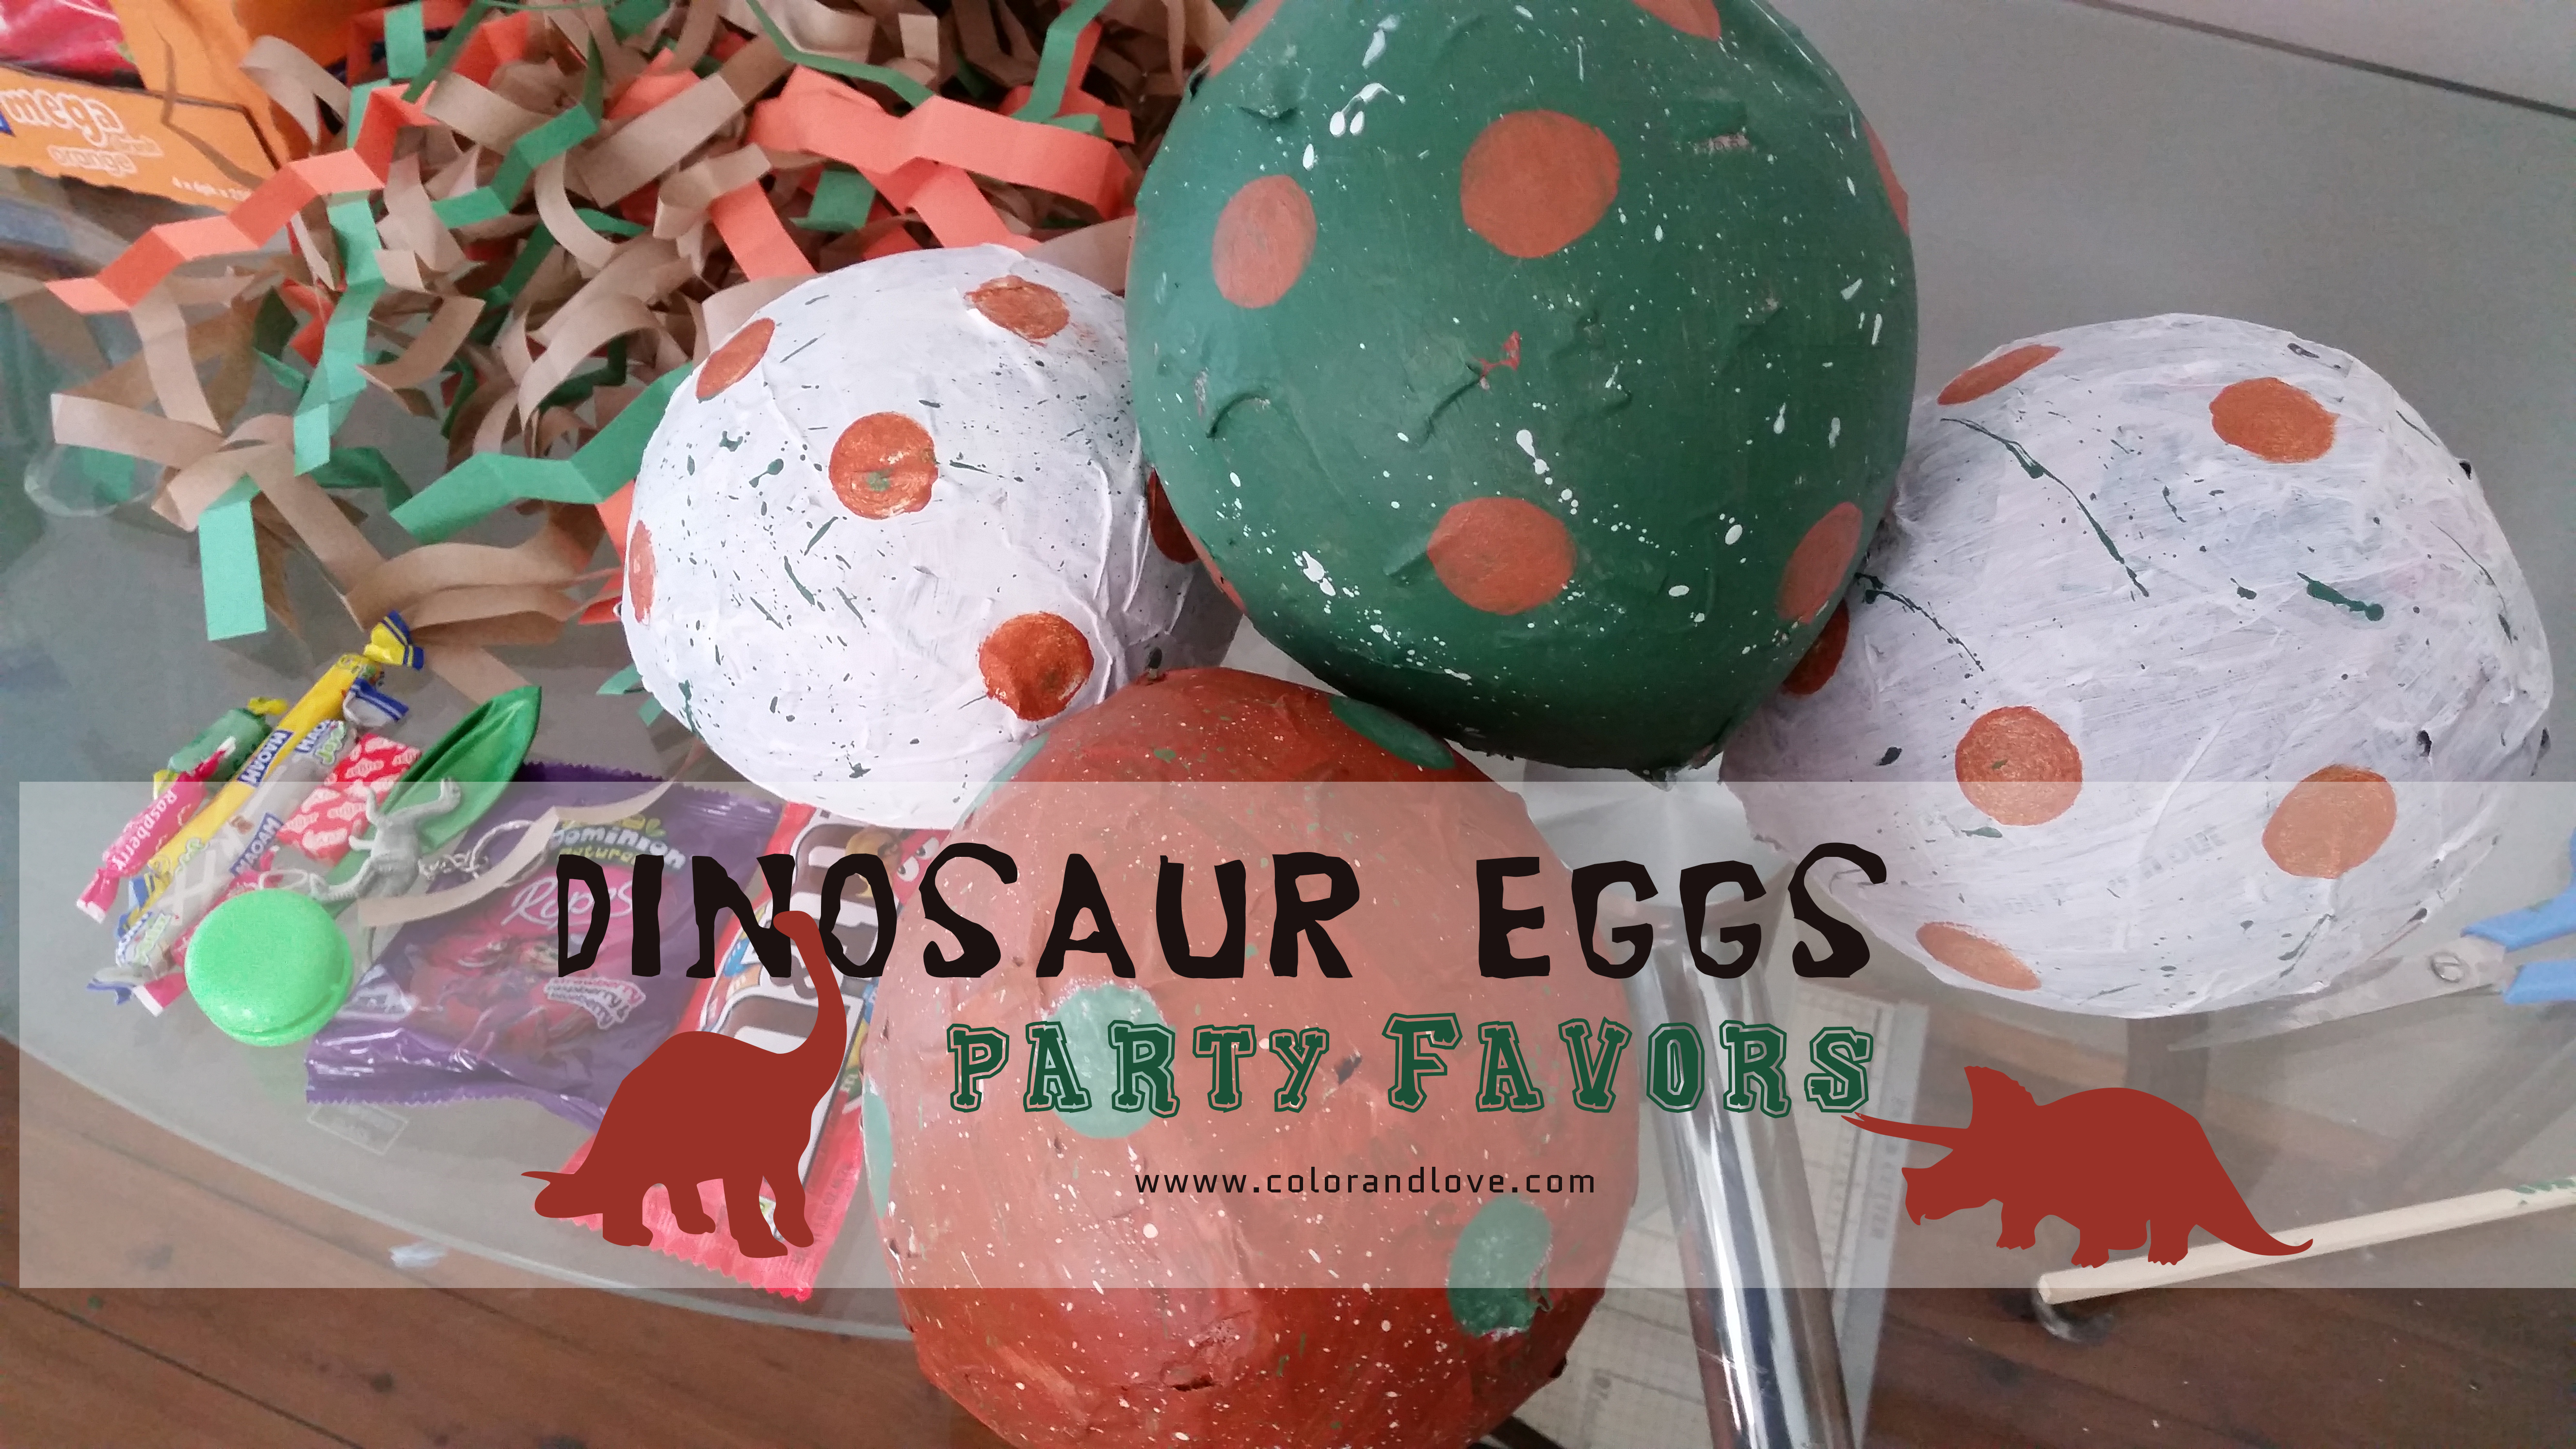 Make your own Dinosaur eggs – Party favors.